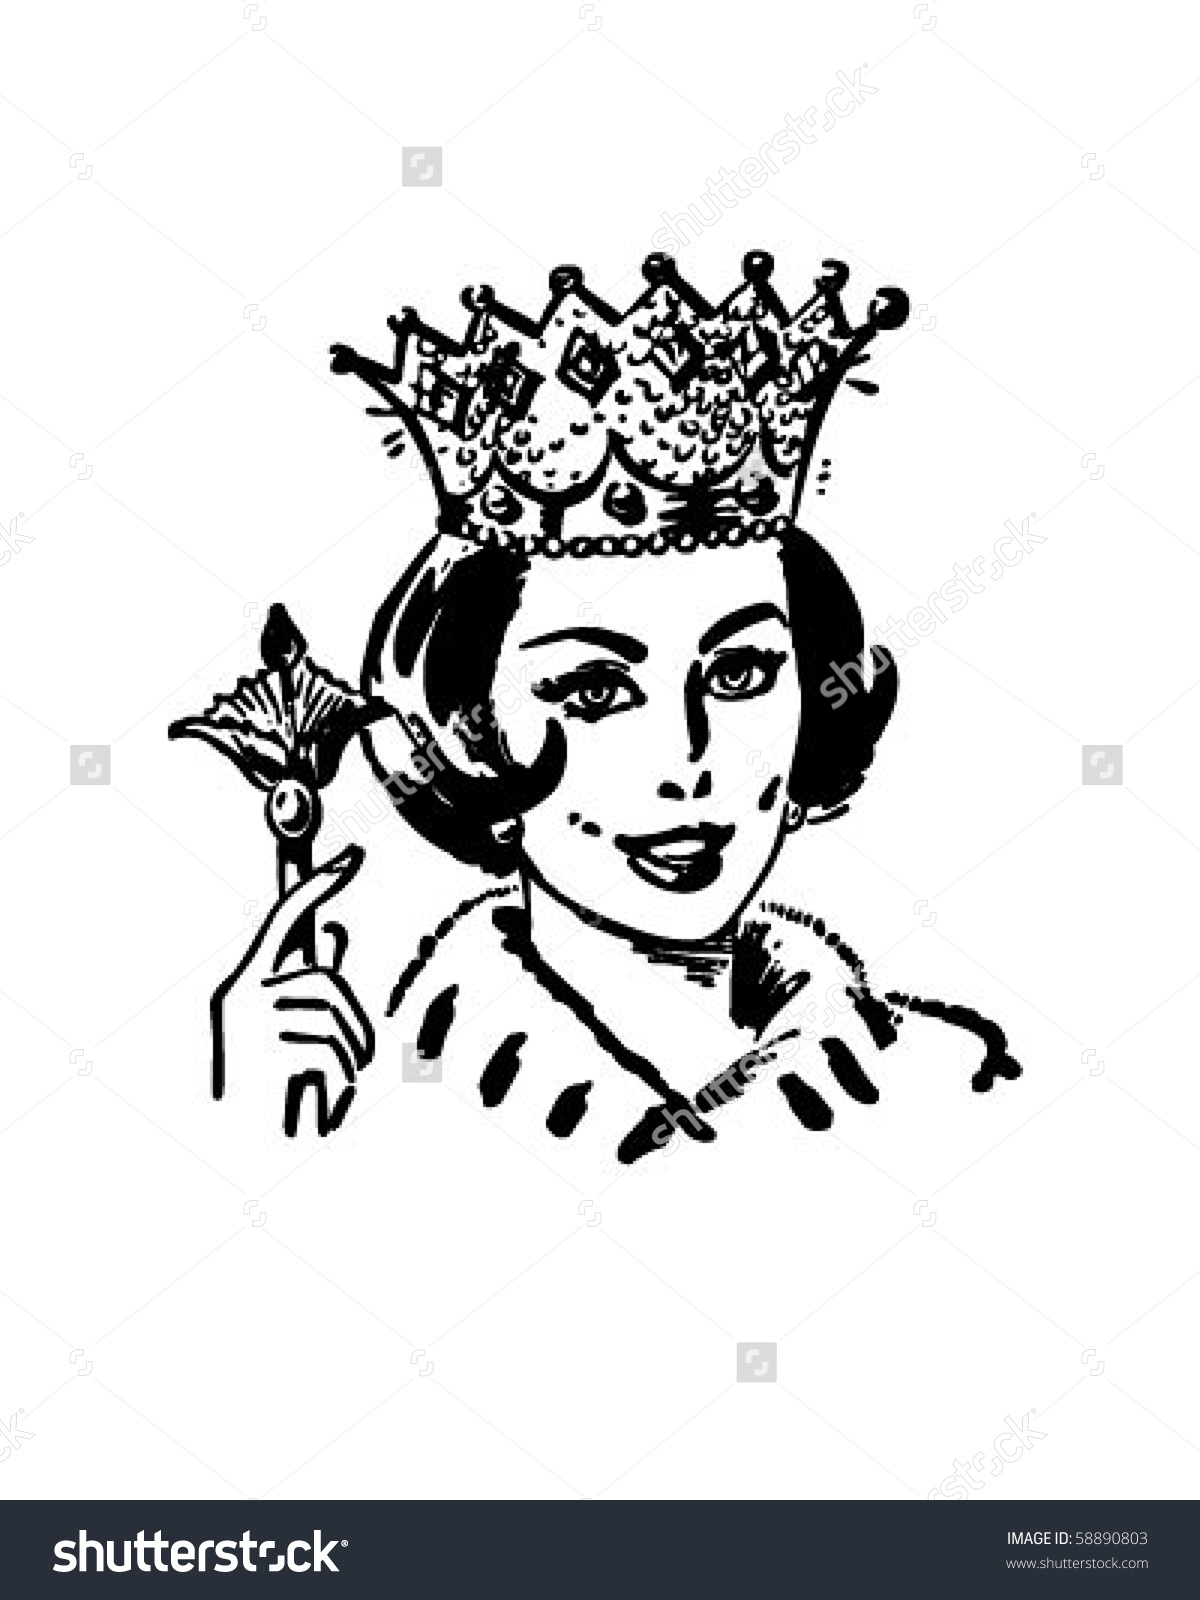 Clipart of a queen clip art black and white download Queen Household Retro Clip Art Stock Vector 58890803 - Shutterstock clip art black and white download